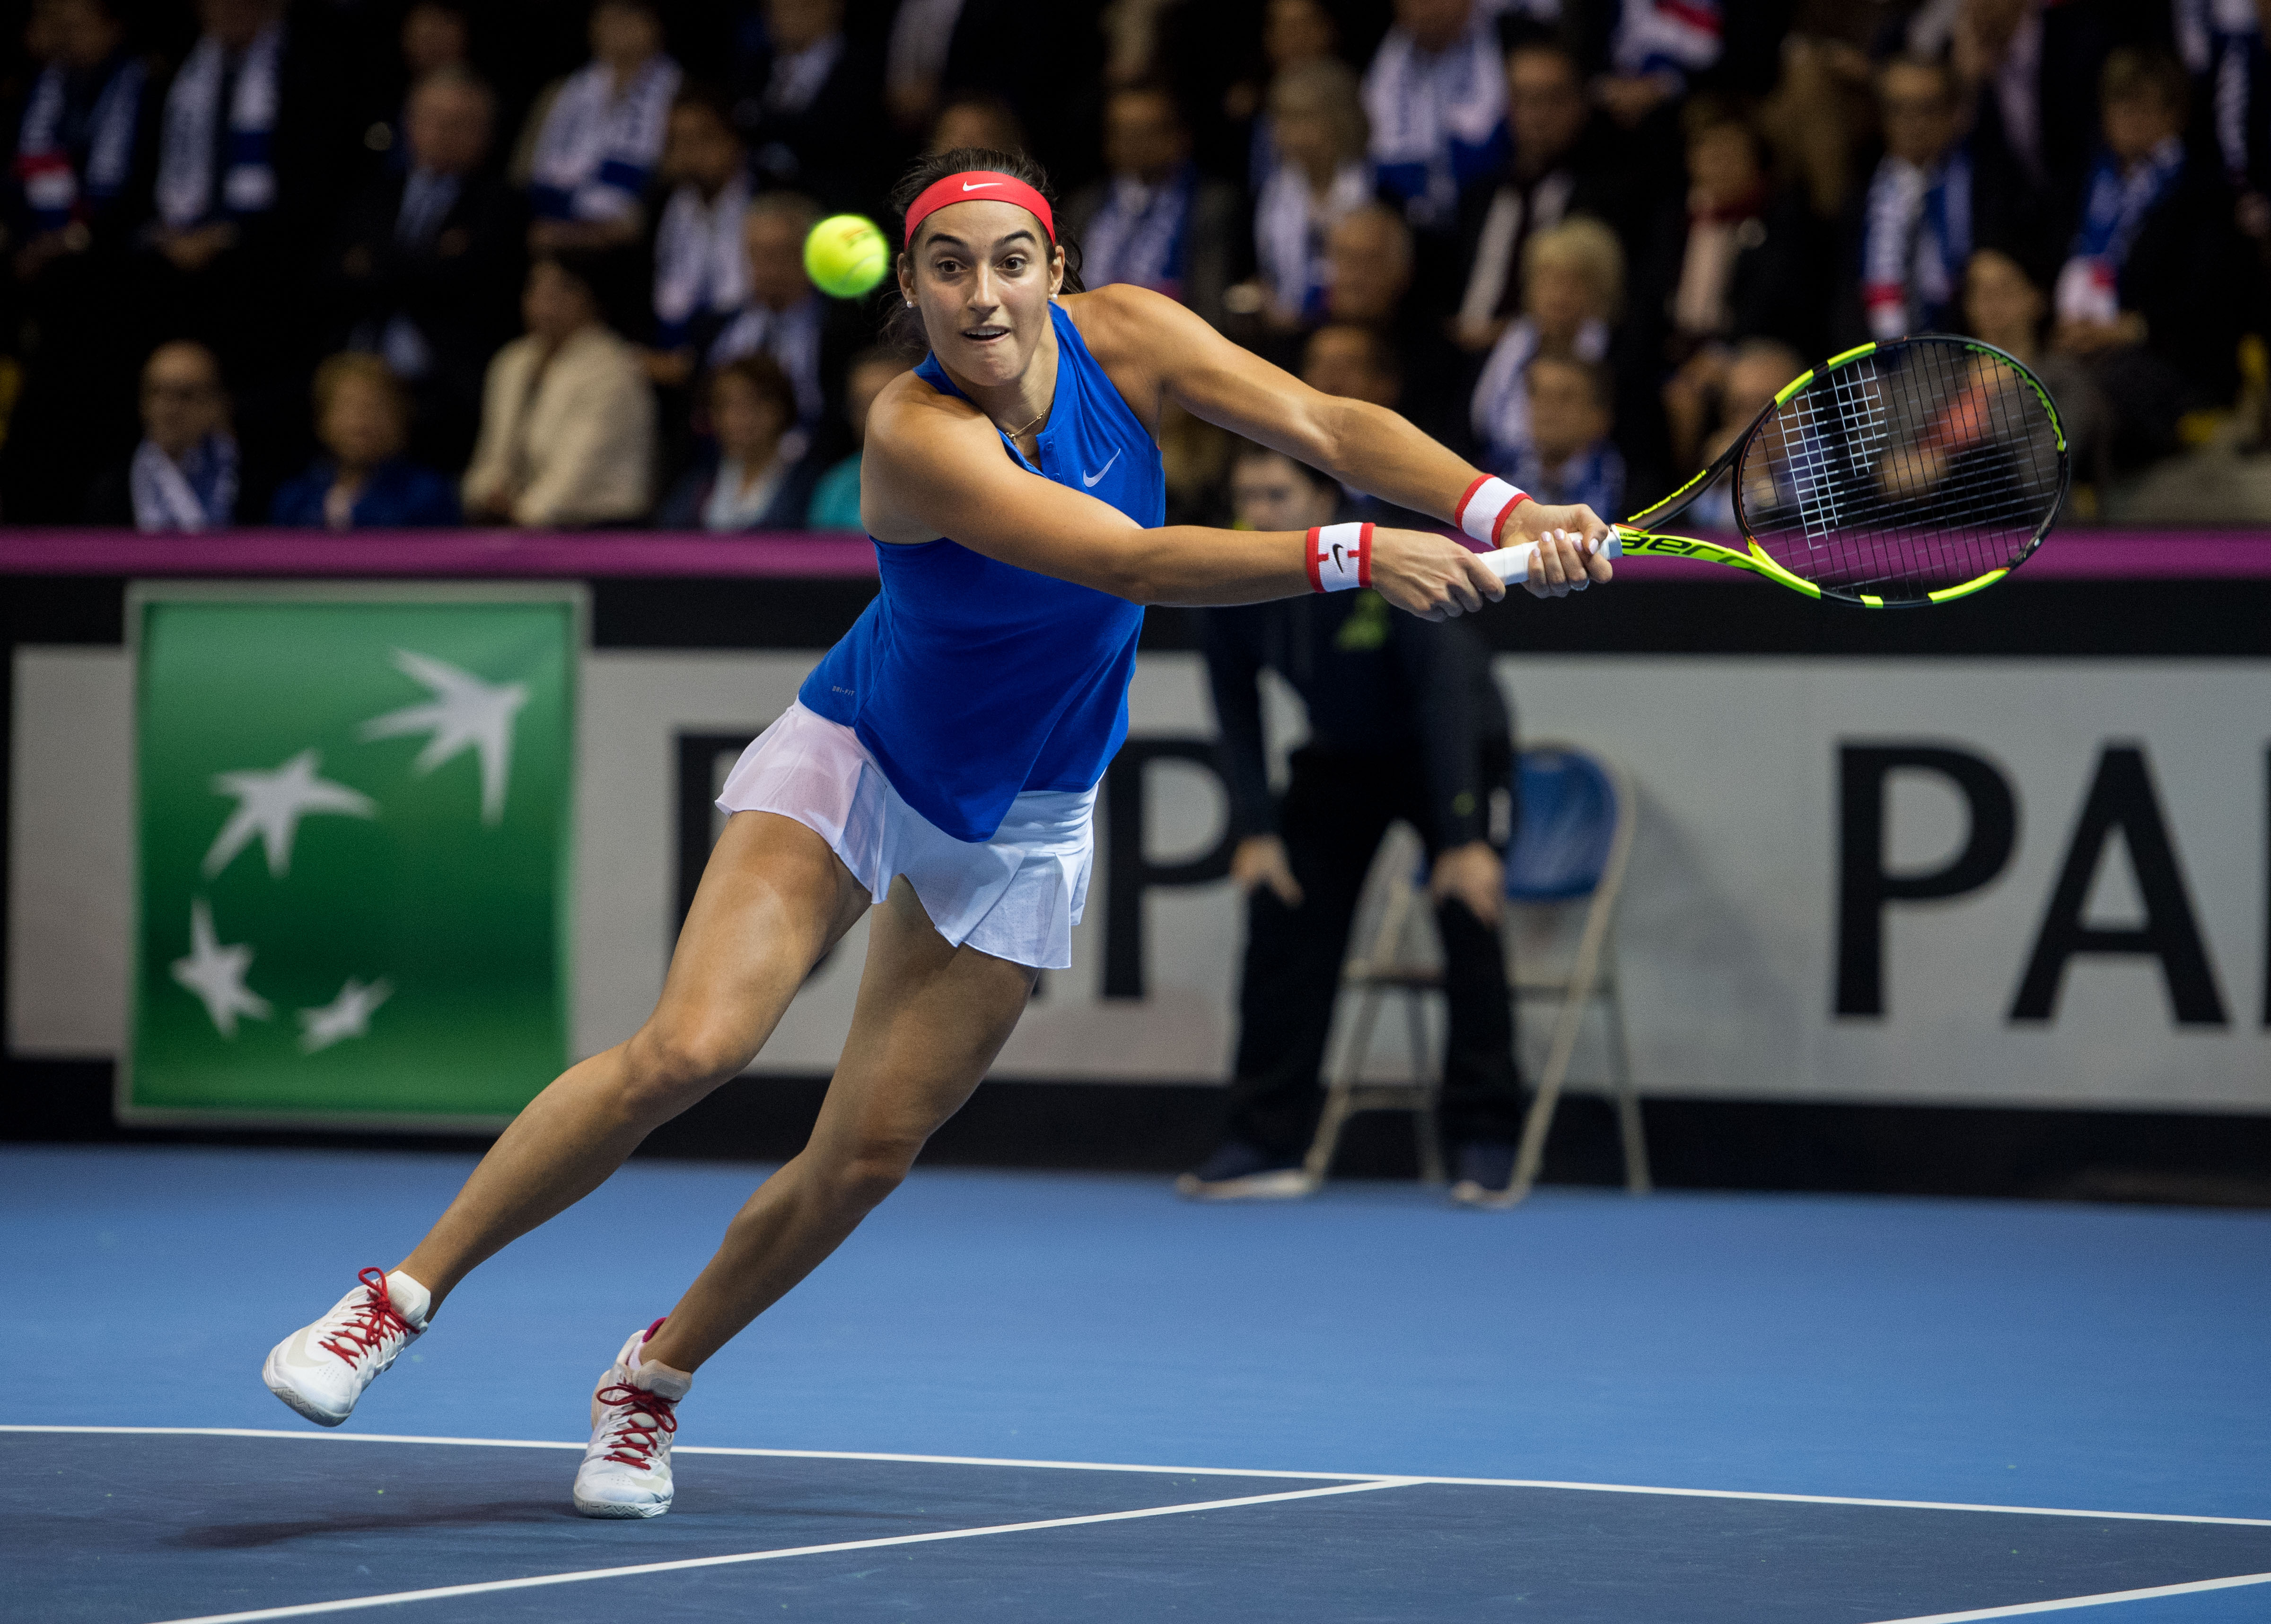 Caroline Garcia's forehand crosscourt winner is Saturday's shot of the day at the 2016 Fed Cup Final